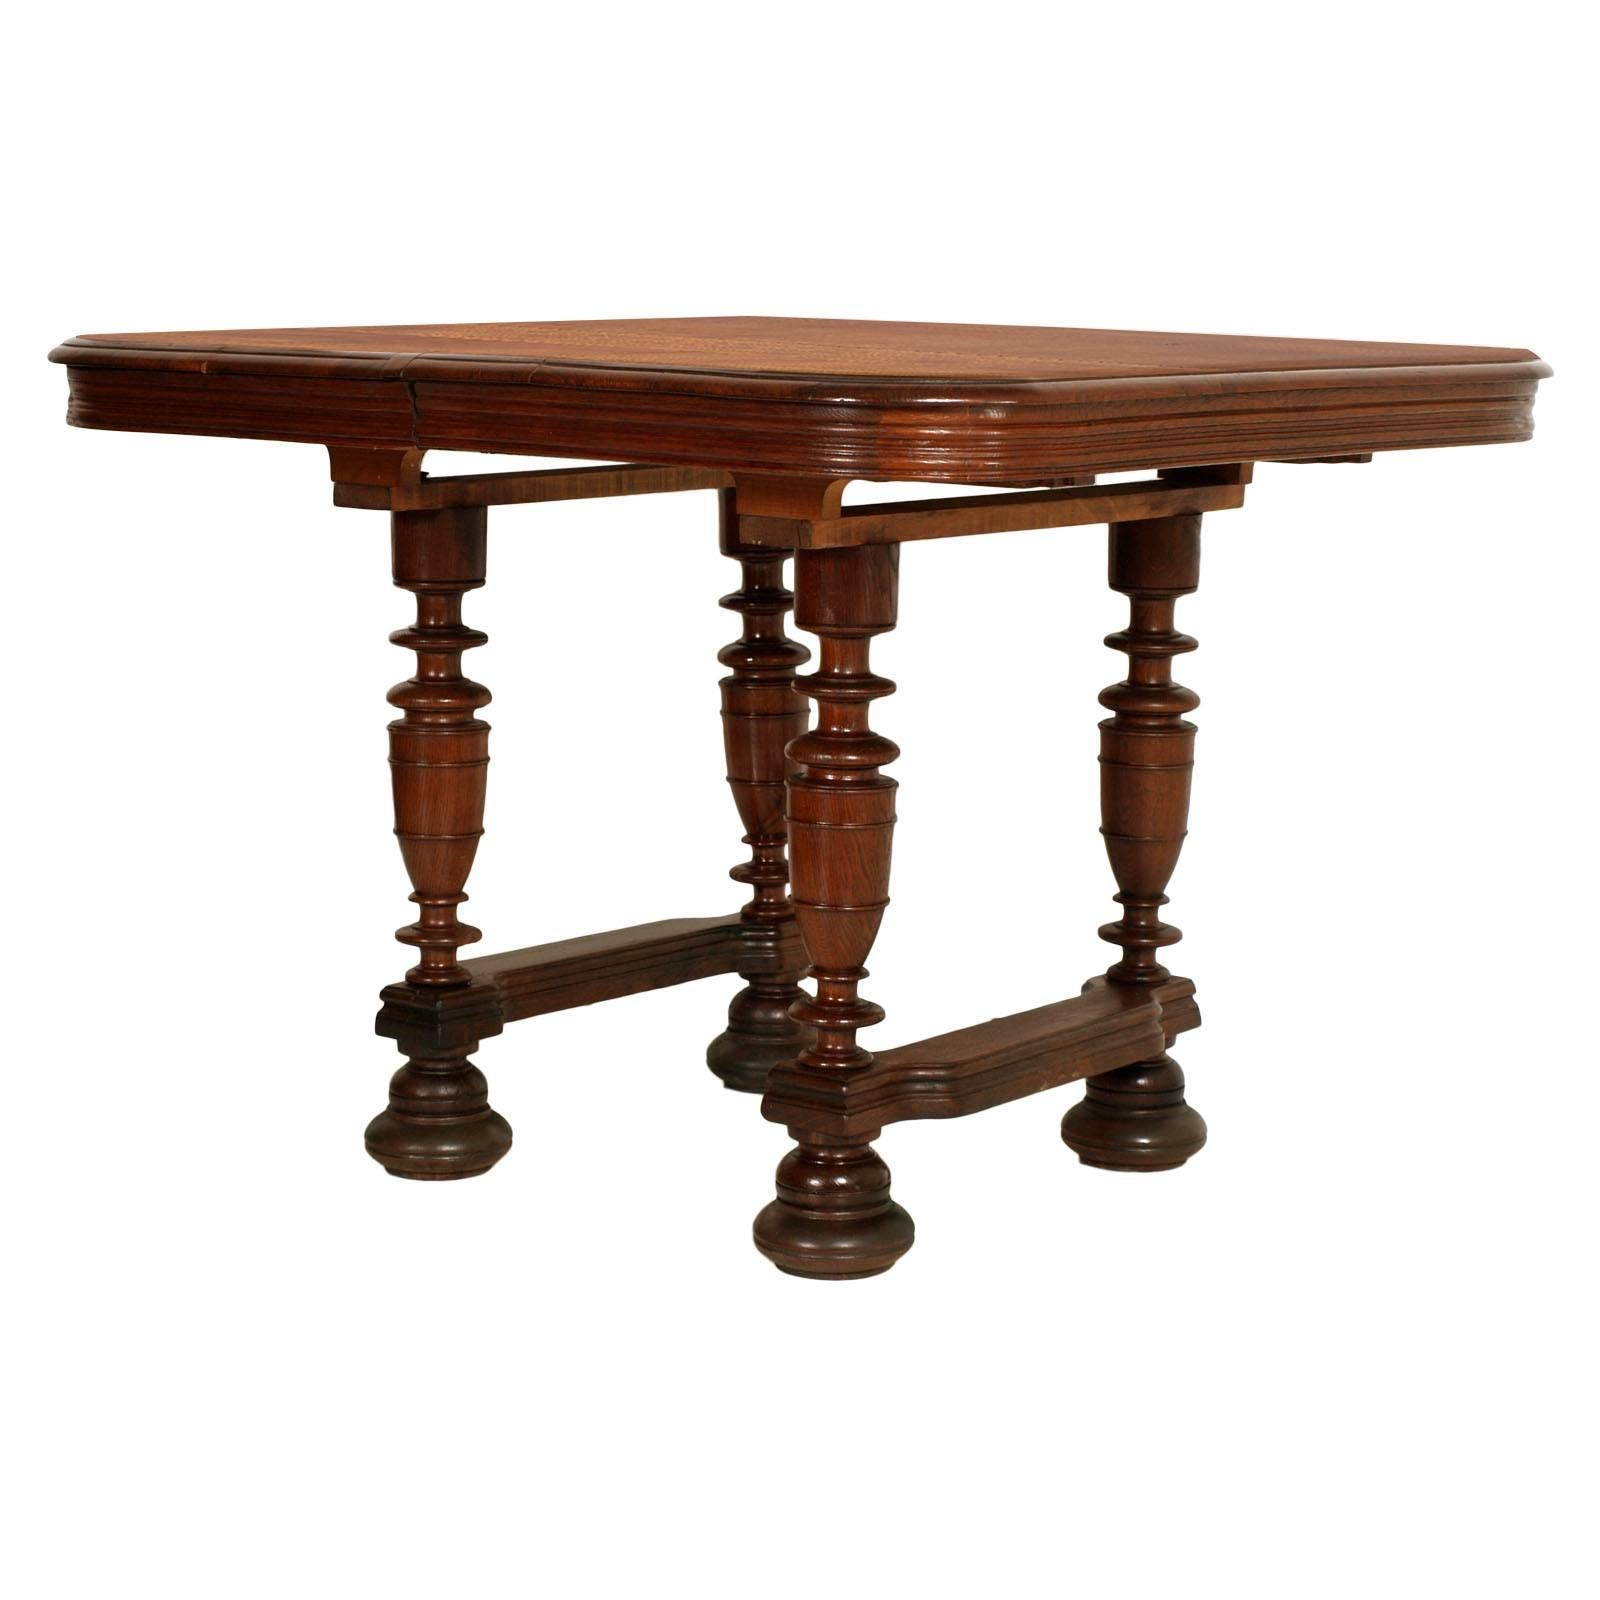 Tavolo Ovale Allungabile Vecchio 19th C Round Extendable Table Baroque Renaissance Solid Walnut Wax Polished